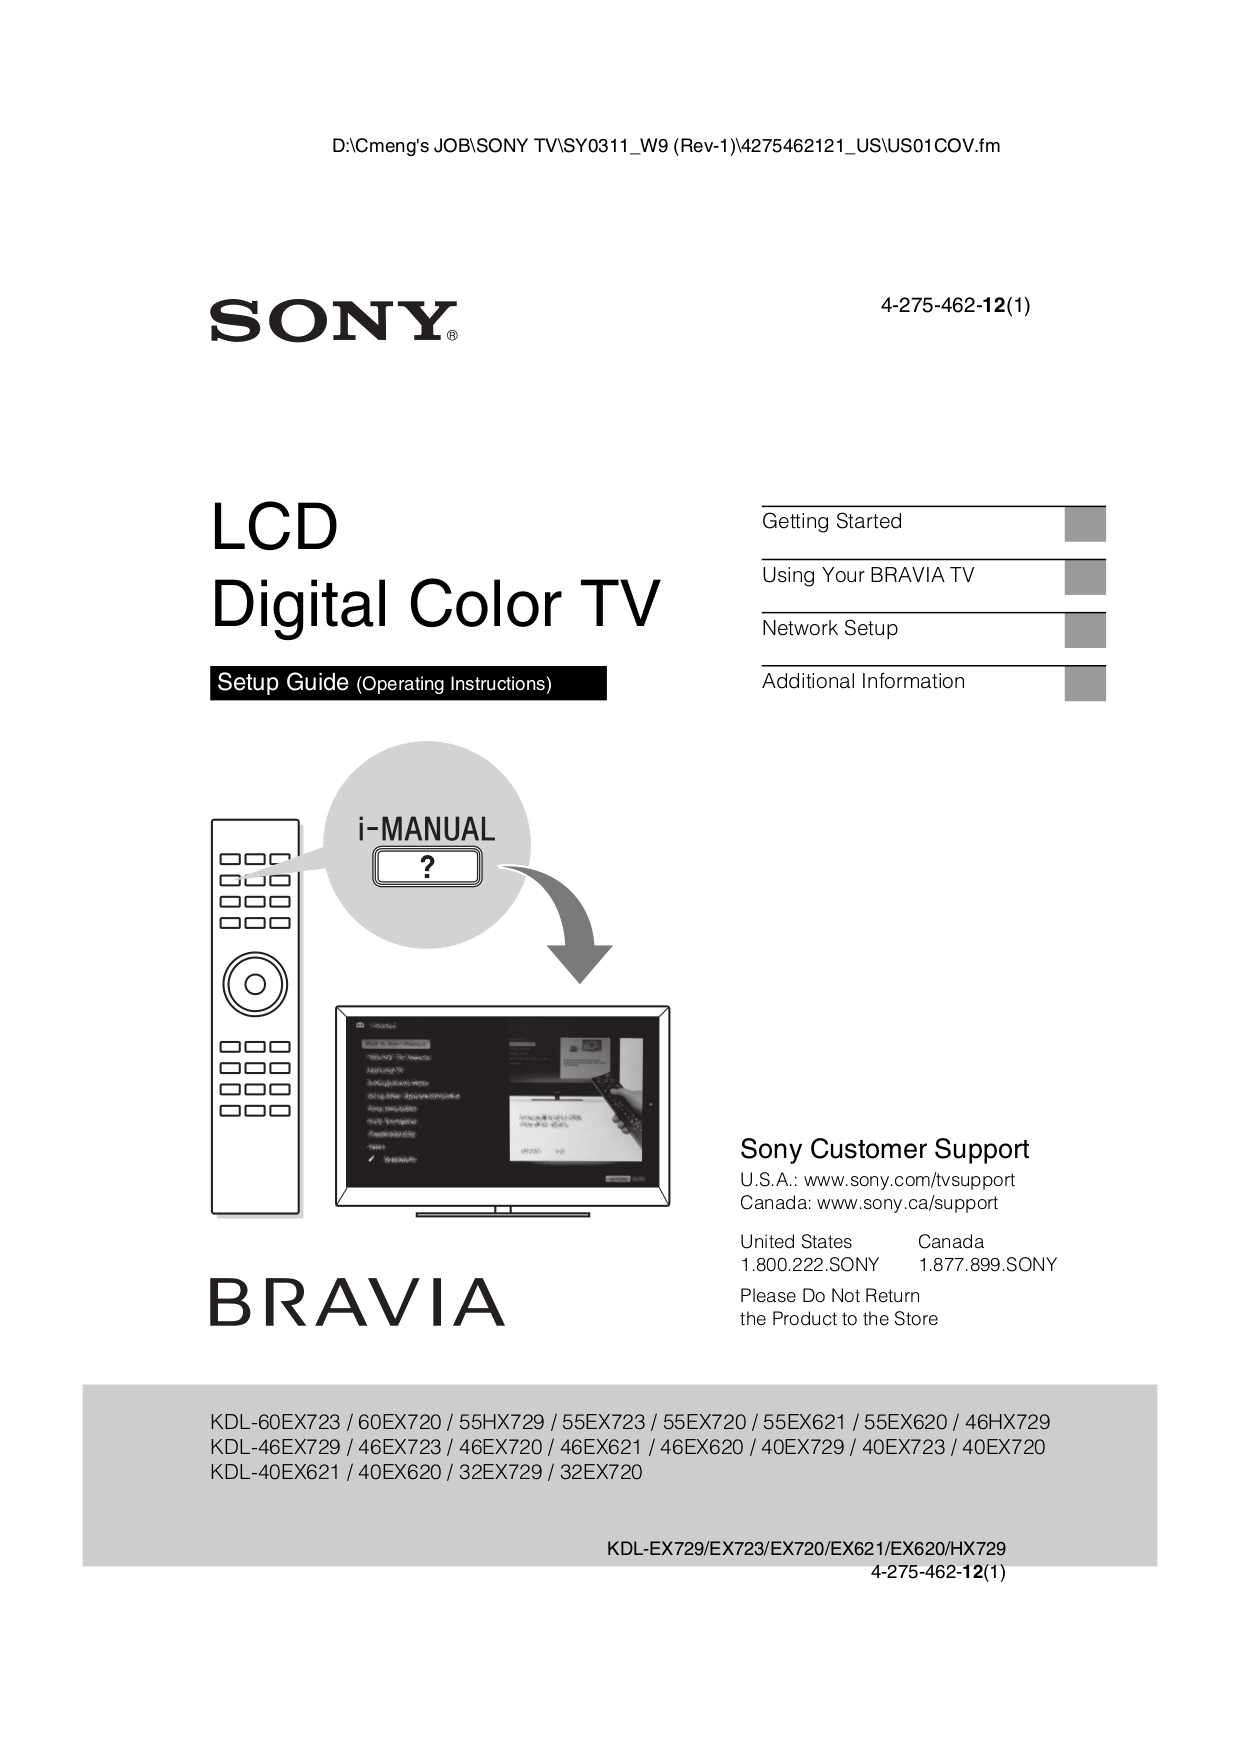 Download free pdf for Sony BRAVIA KDL-40EX720 TV manual